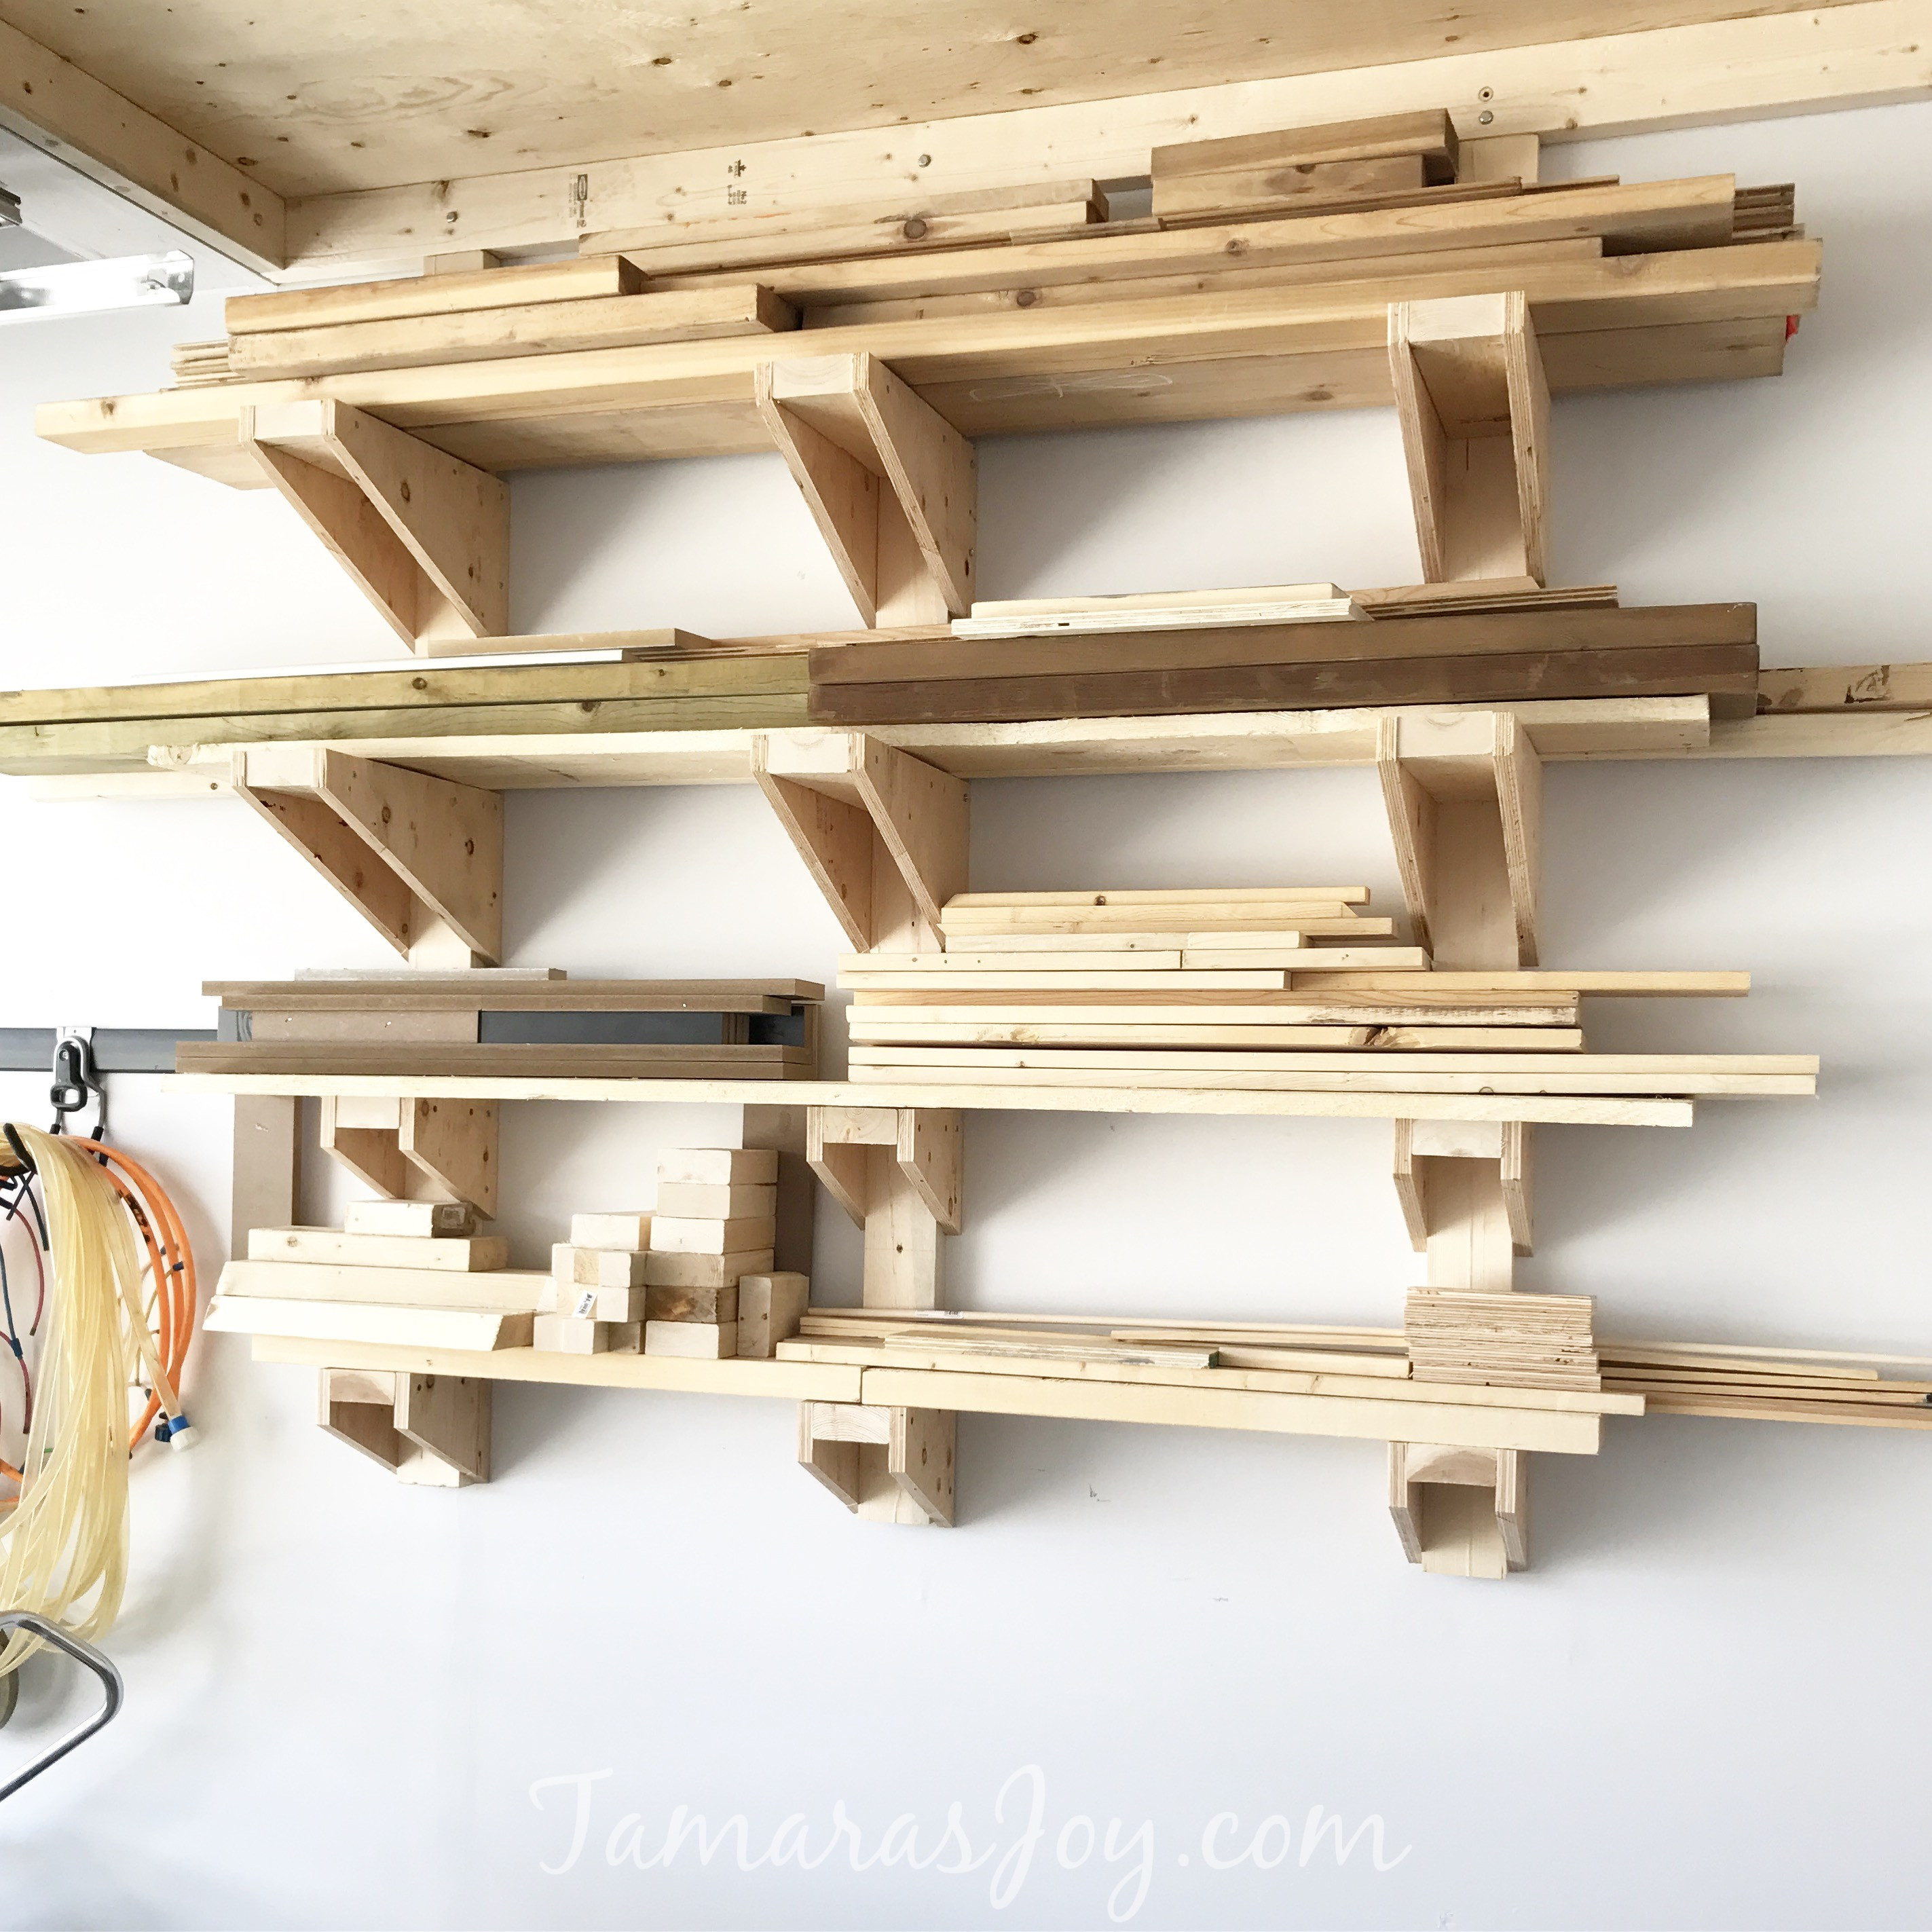 Best ideas about Lumber Rack DIY . Save or Pin A Simple DIY Garage Lumber Rack that YOU can build Now.